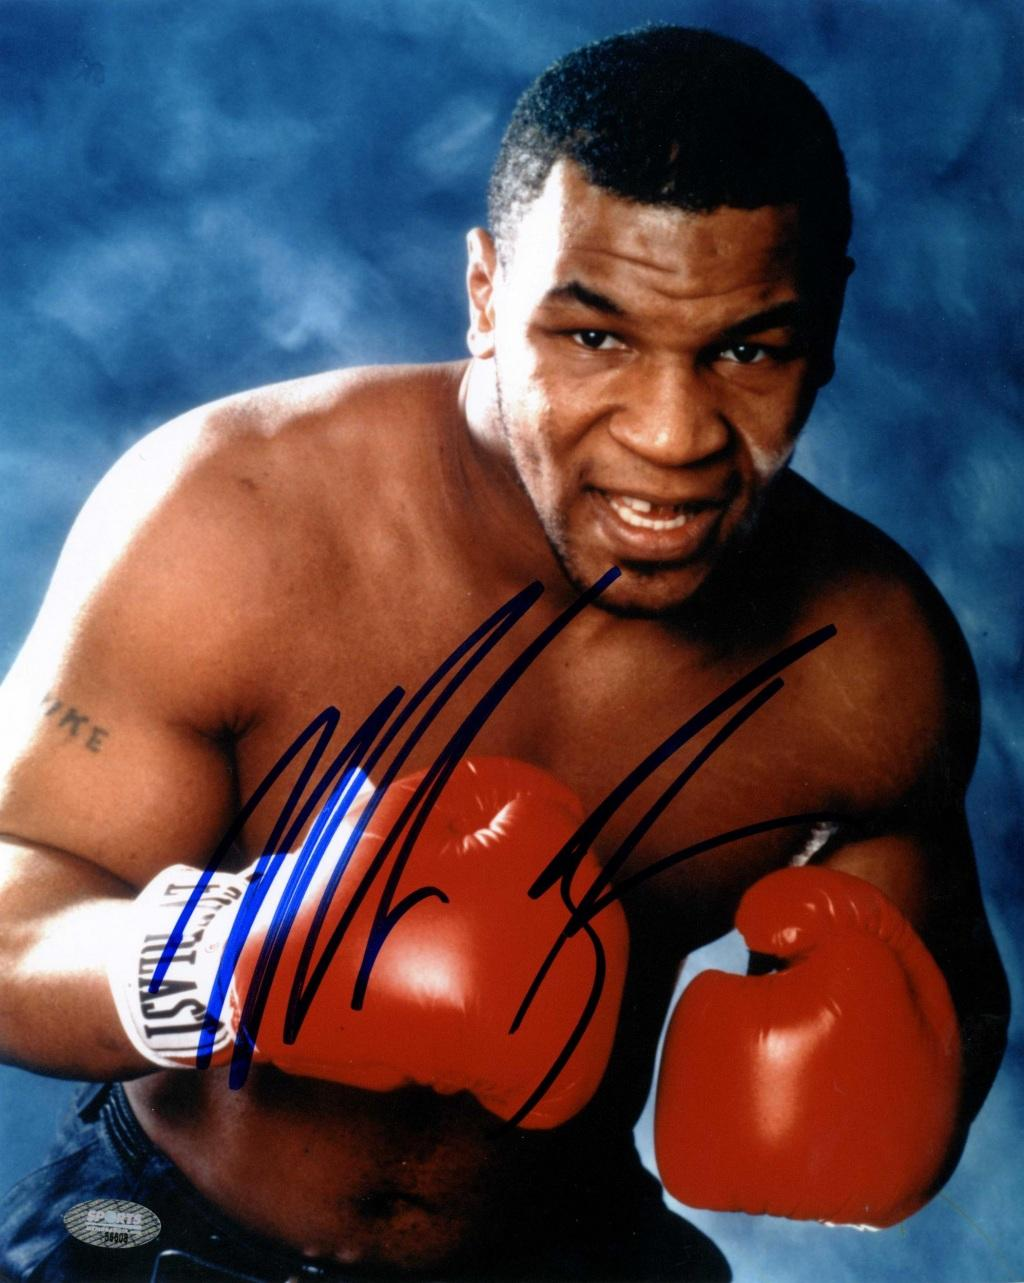 http://2.bp.blogspot.com/-Y6EsLGTMbx0/UQP6qfOdxFI/AAAAAAAAN7c/Y16BxW_Fs-Q/s1600/mike-tyson-shared-photo-1029842849.jpg